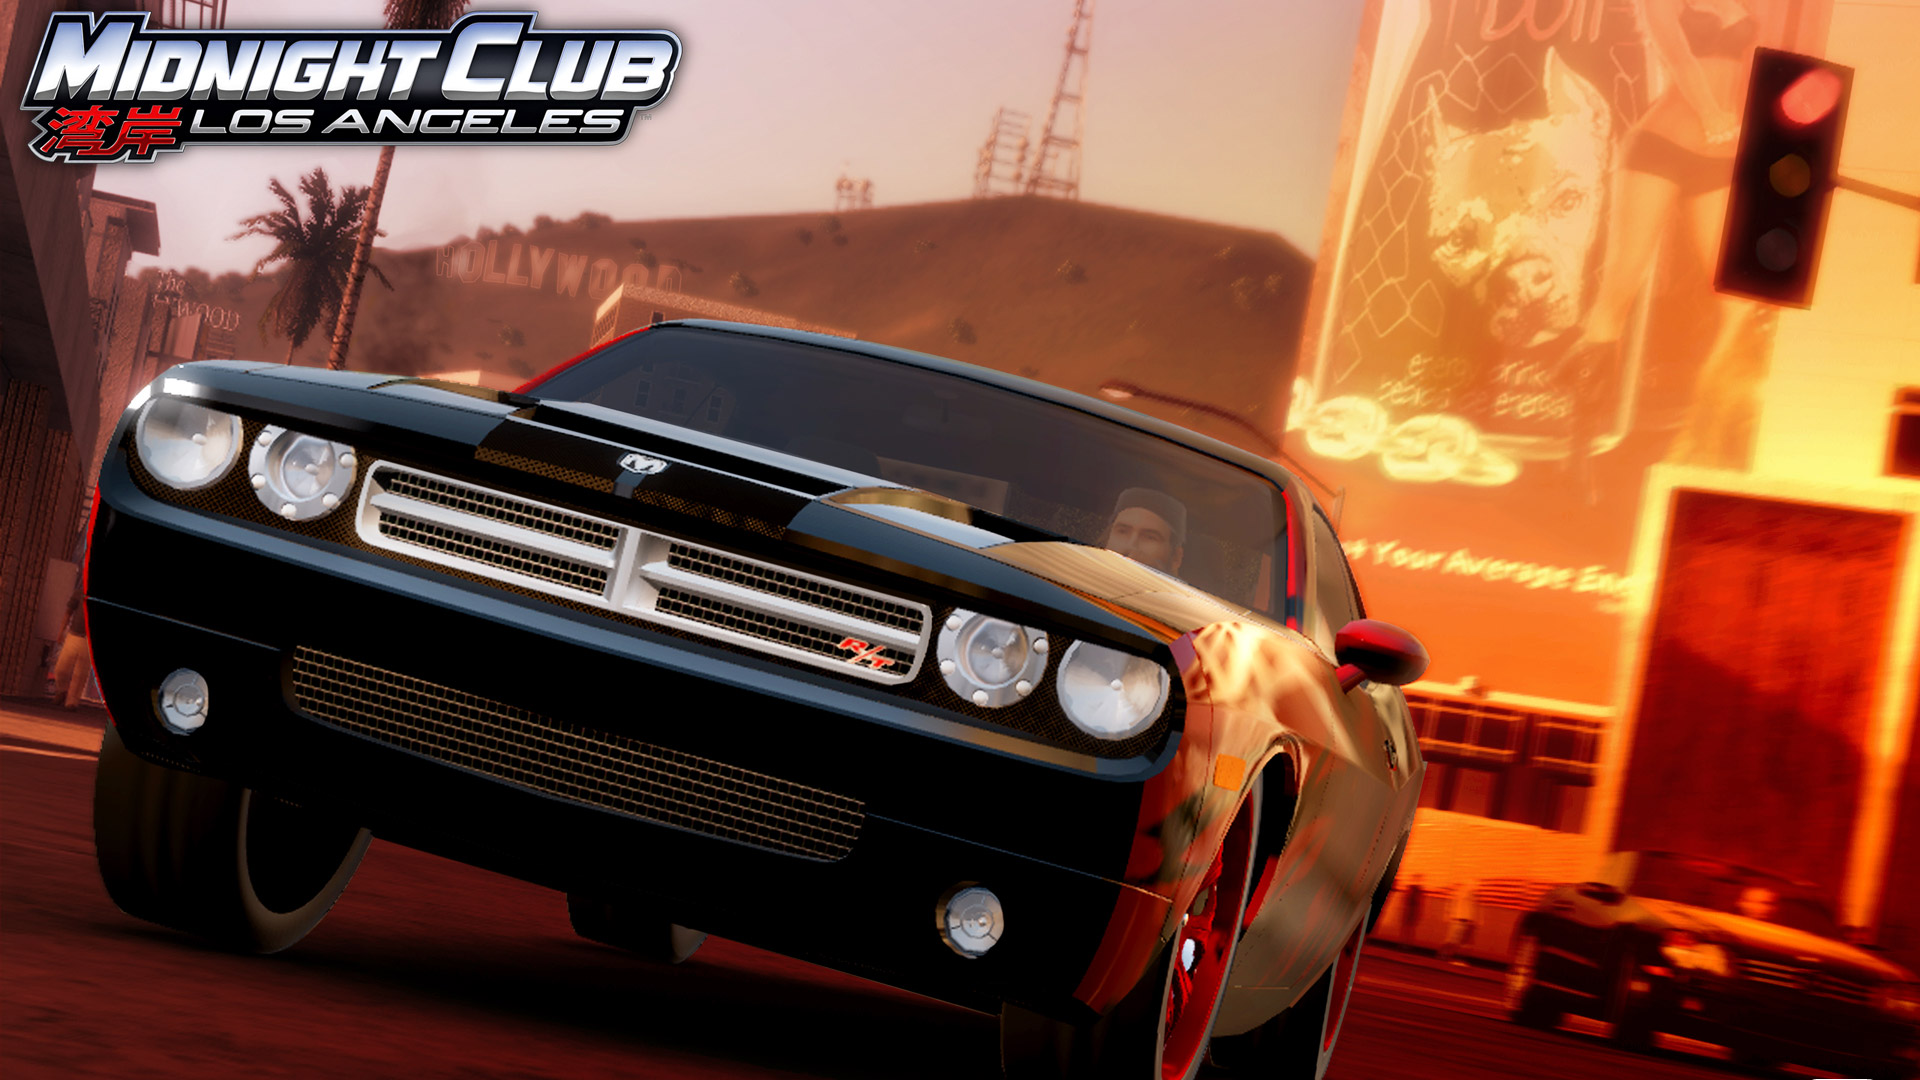 Midnight Club: Los Angeles Wallpaper in 1920x1080